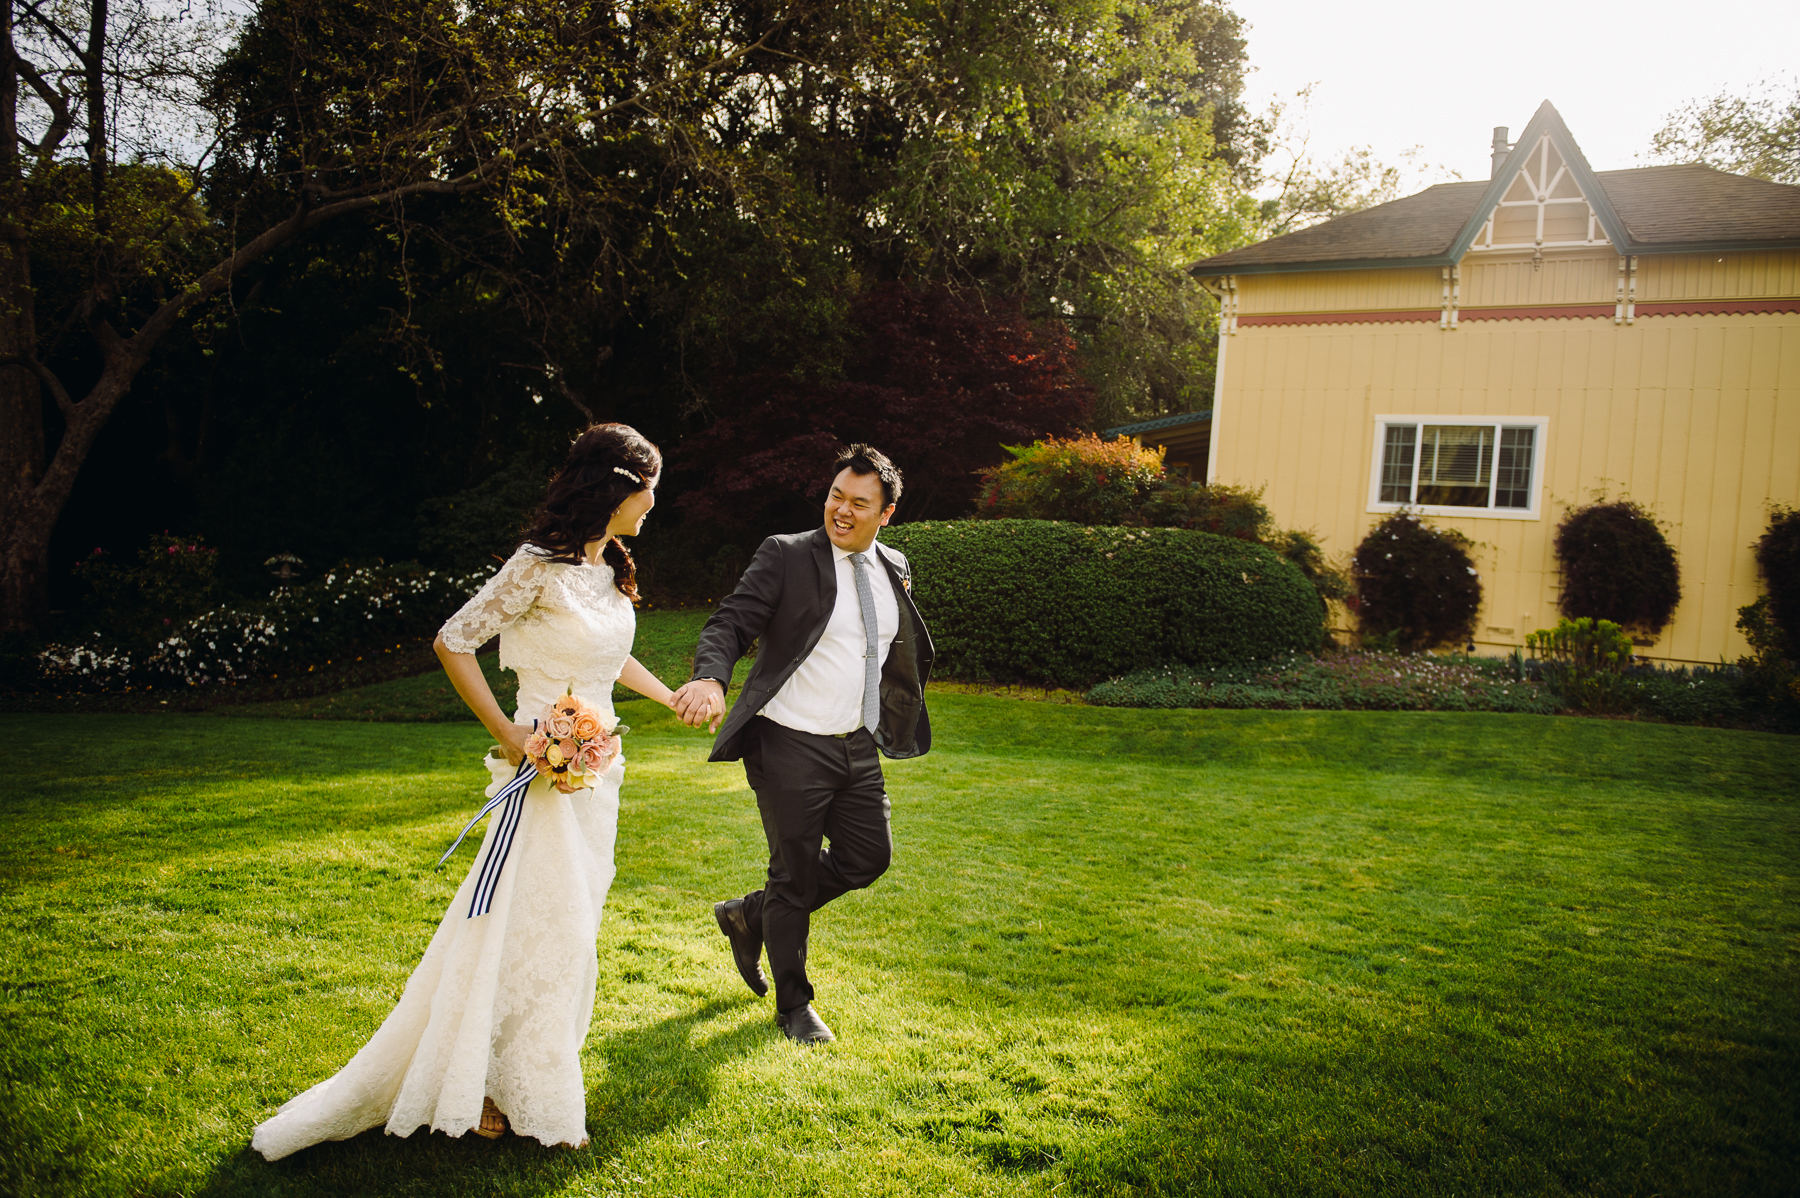 Madrona Manor Wedding celebrations